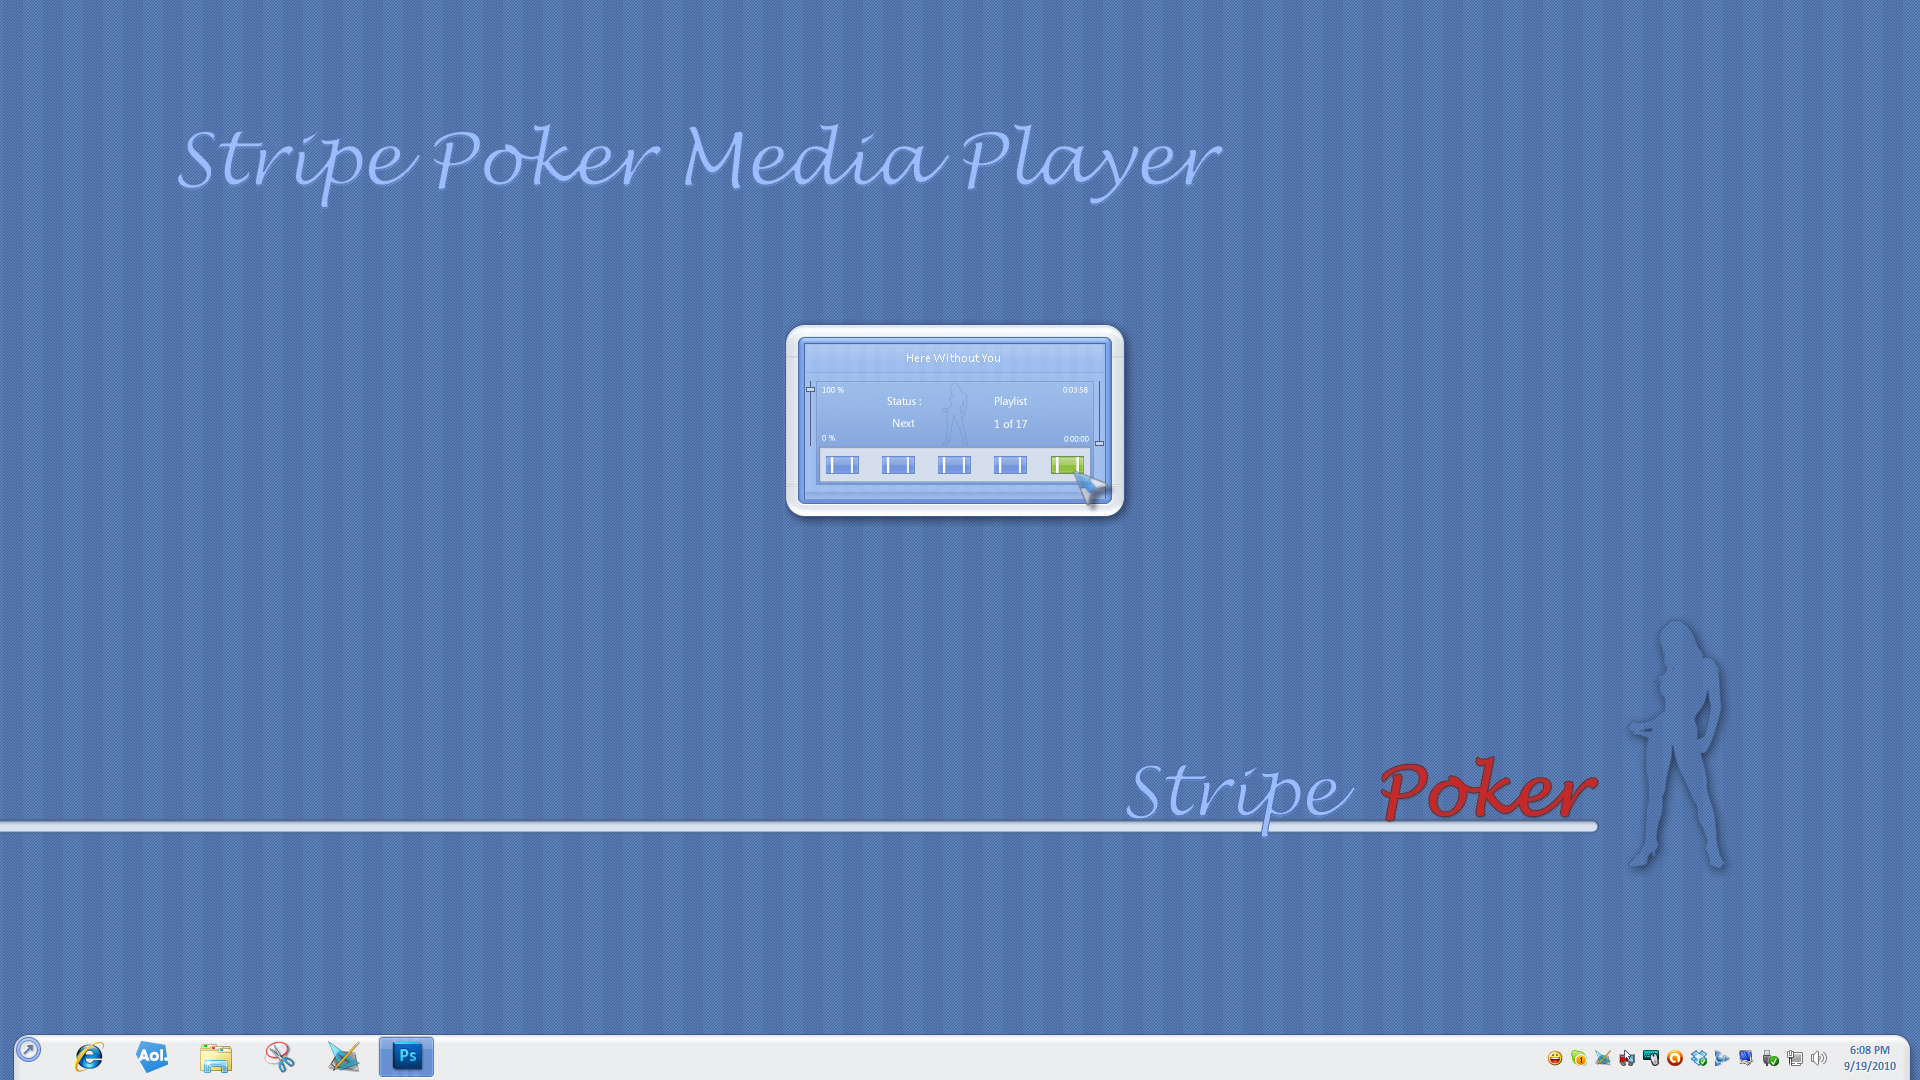 Stripe Poker Media Player Widget